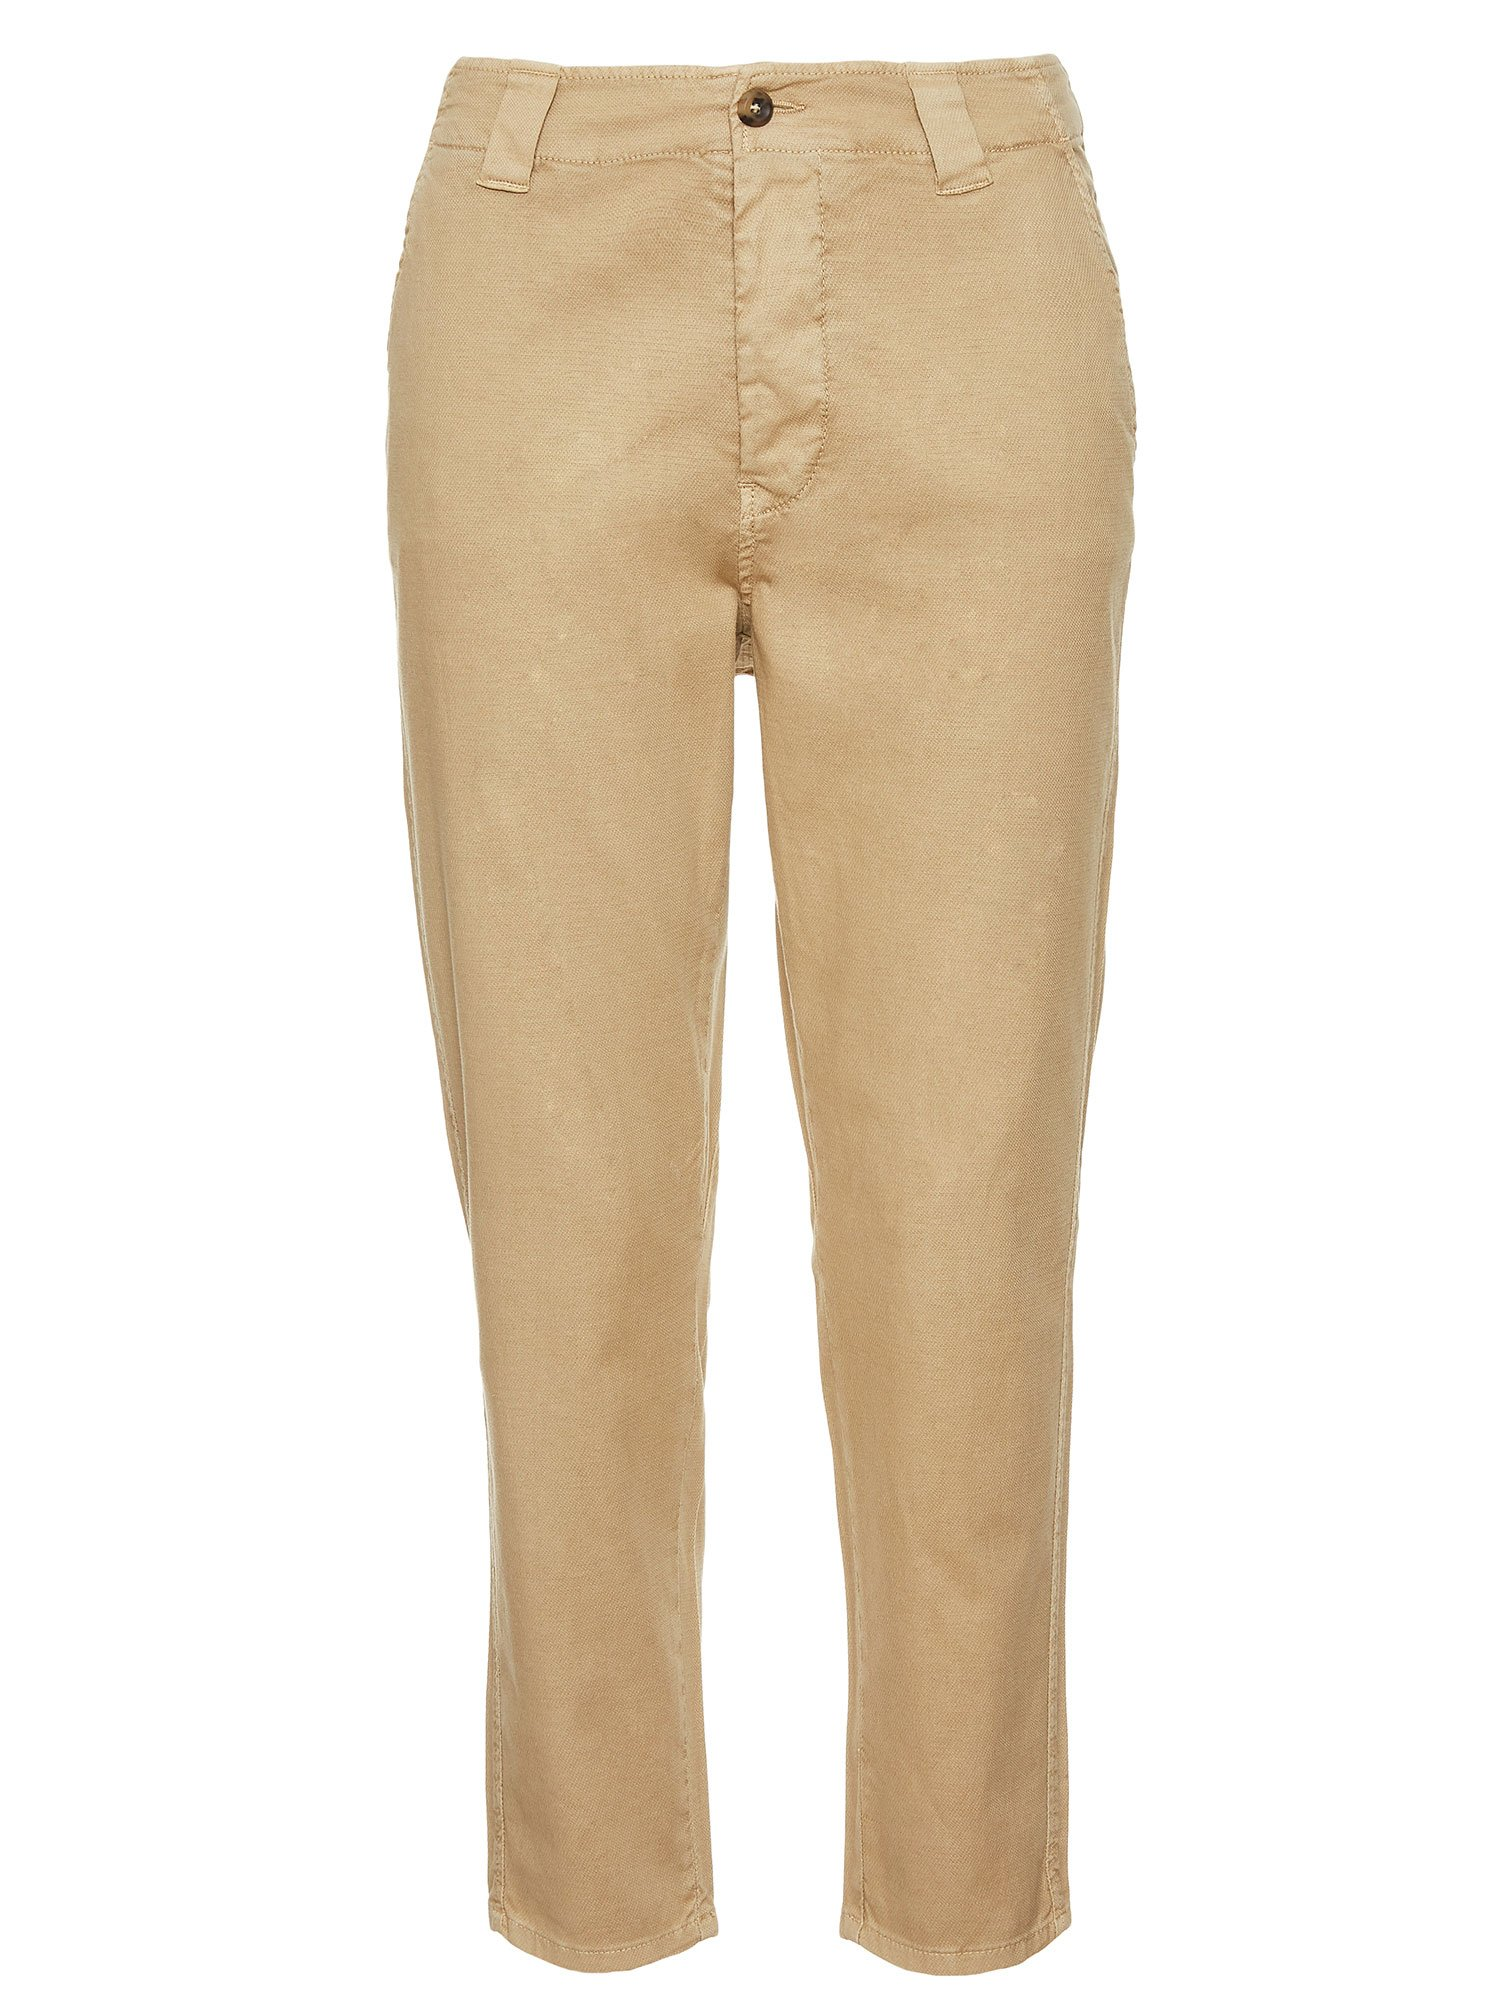 LONG COTTON DOBBY WEAVE TROUSERS - Blauer